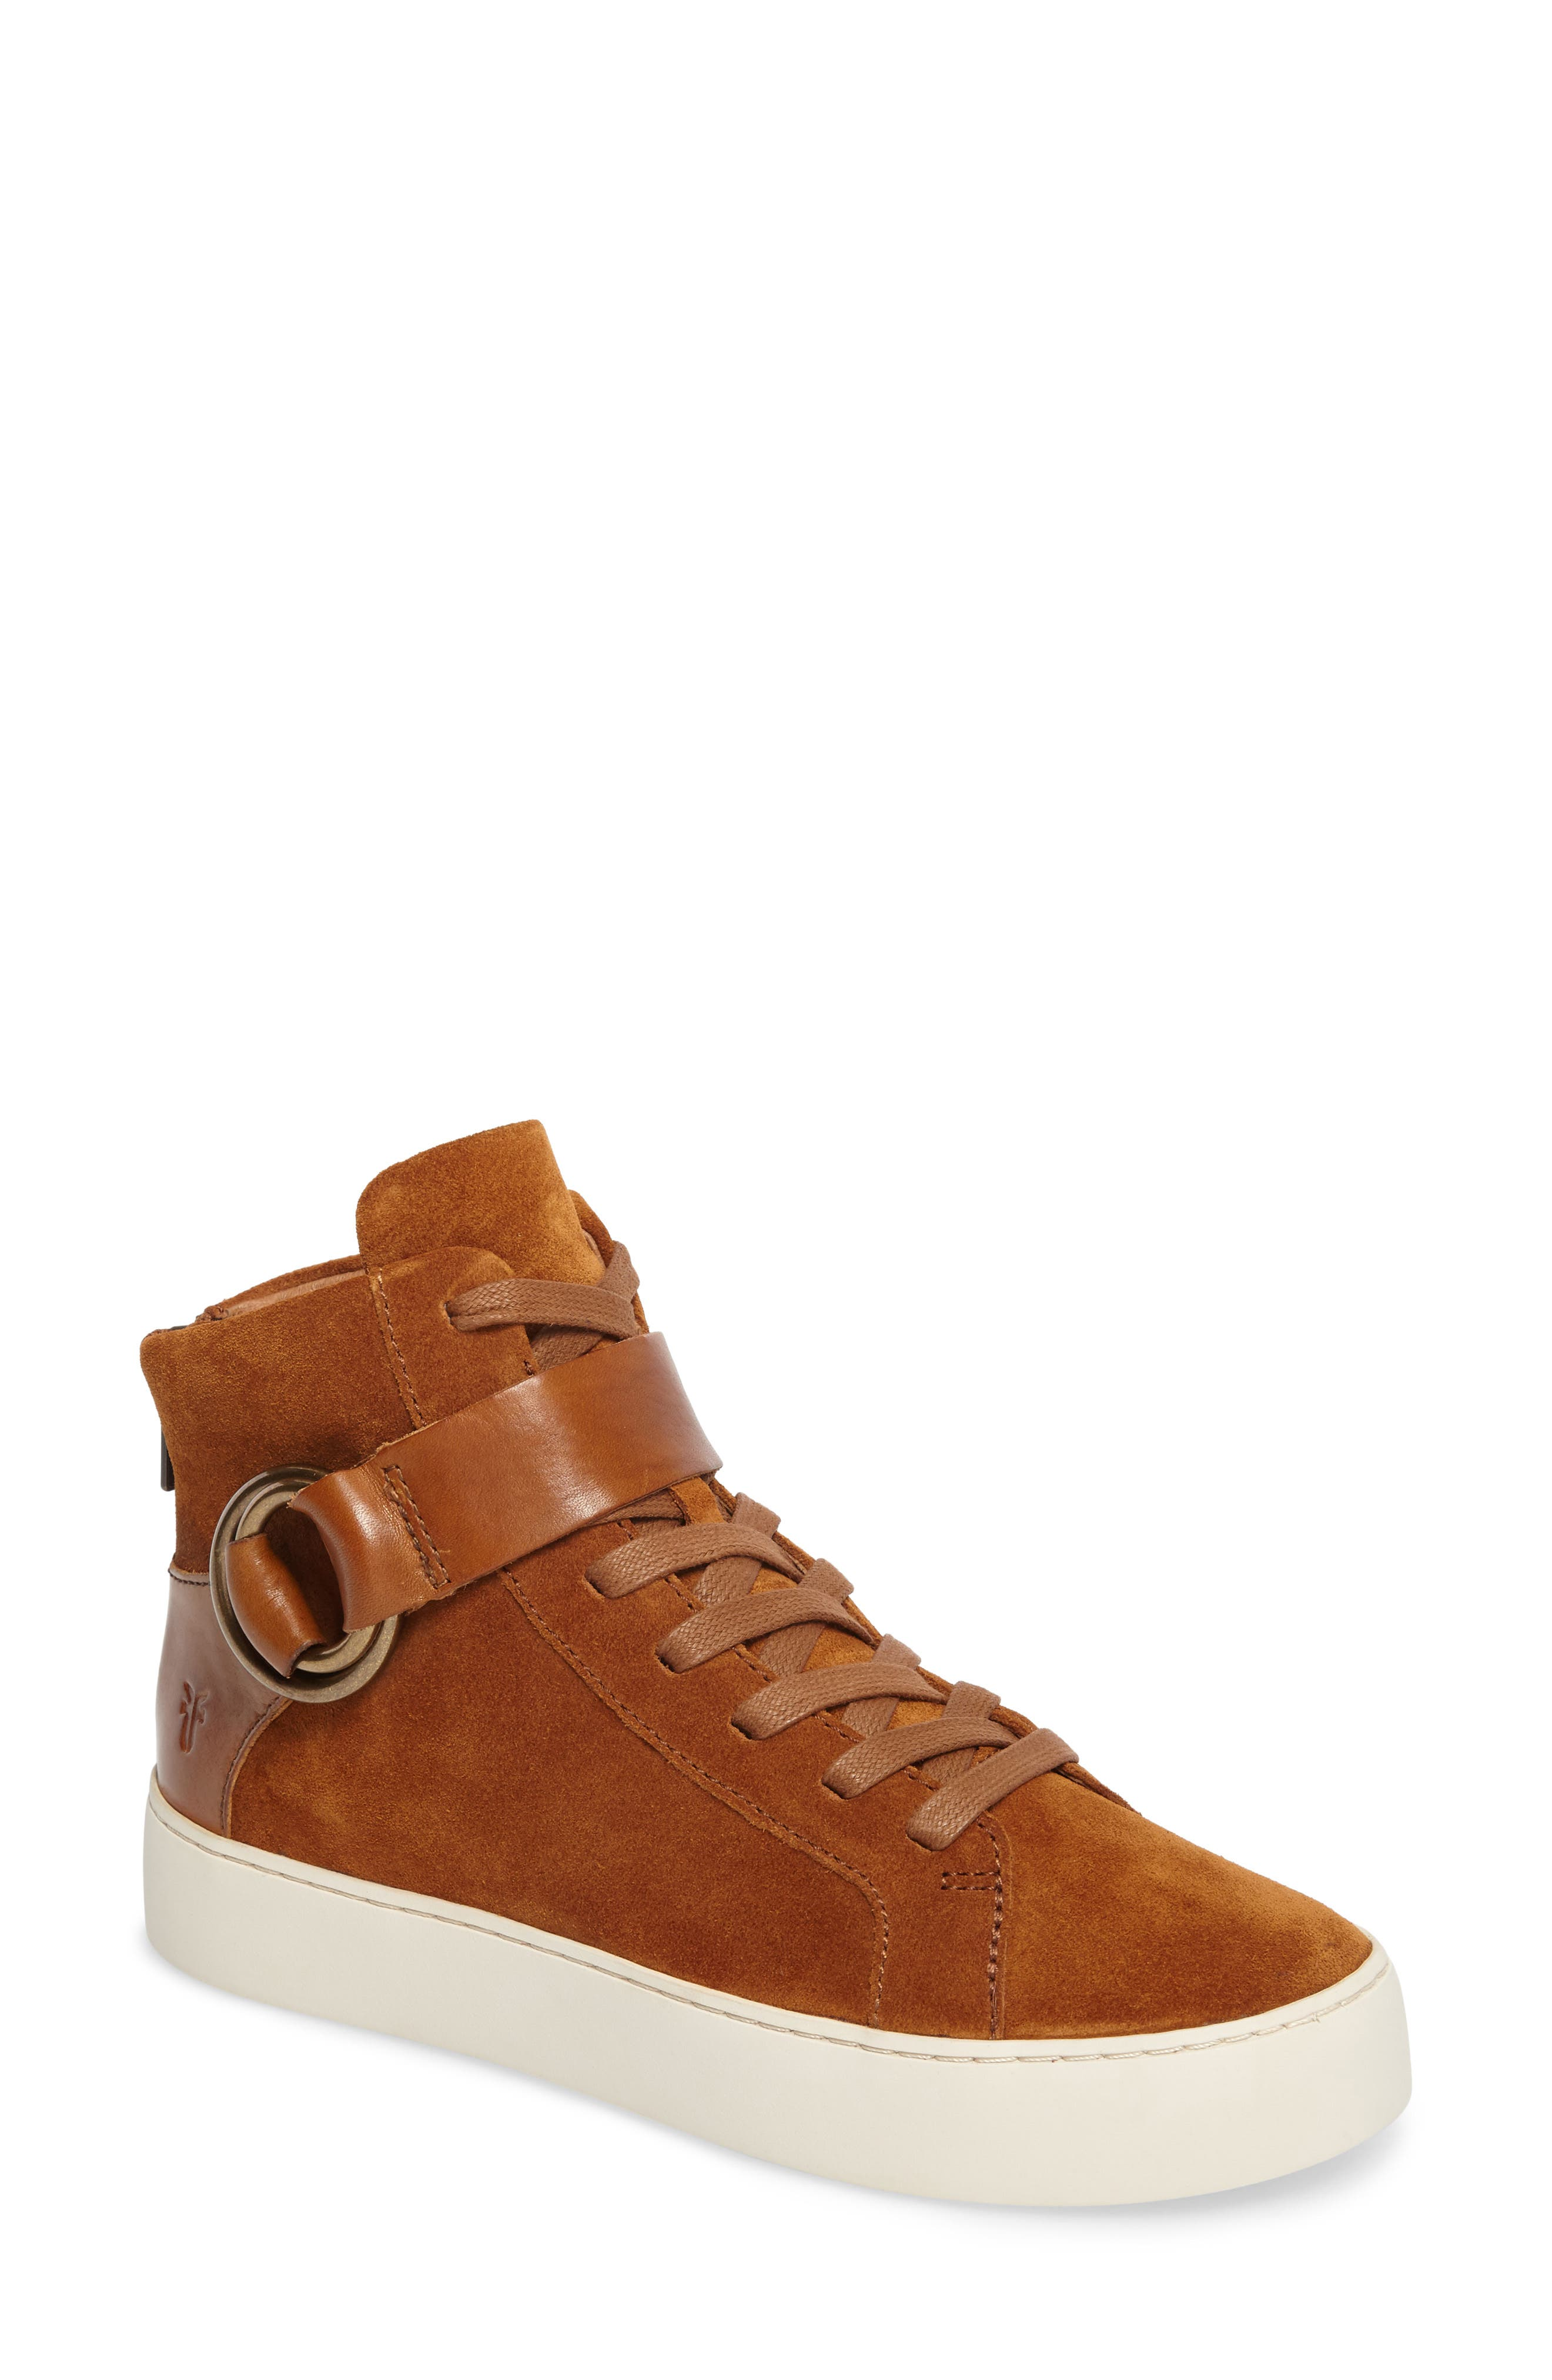 Lena Harness Sneaker,                             Main thumbnail 2, color,